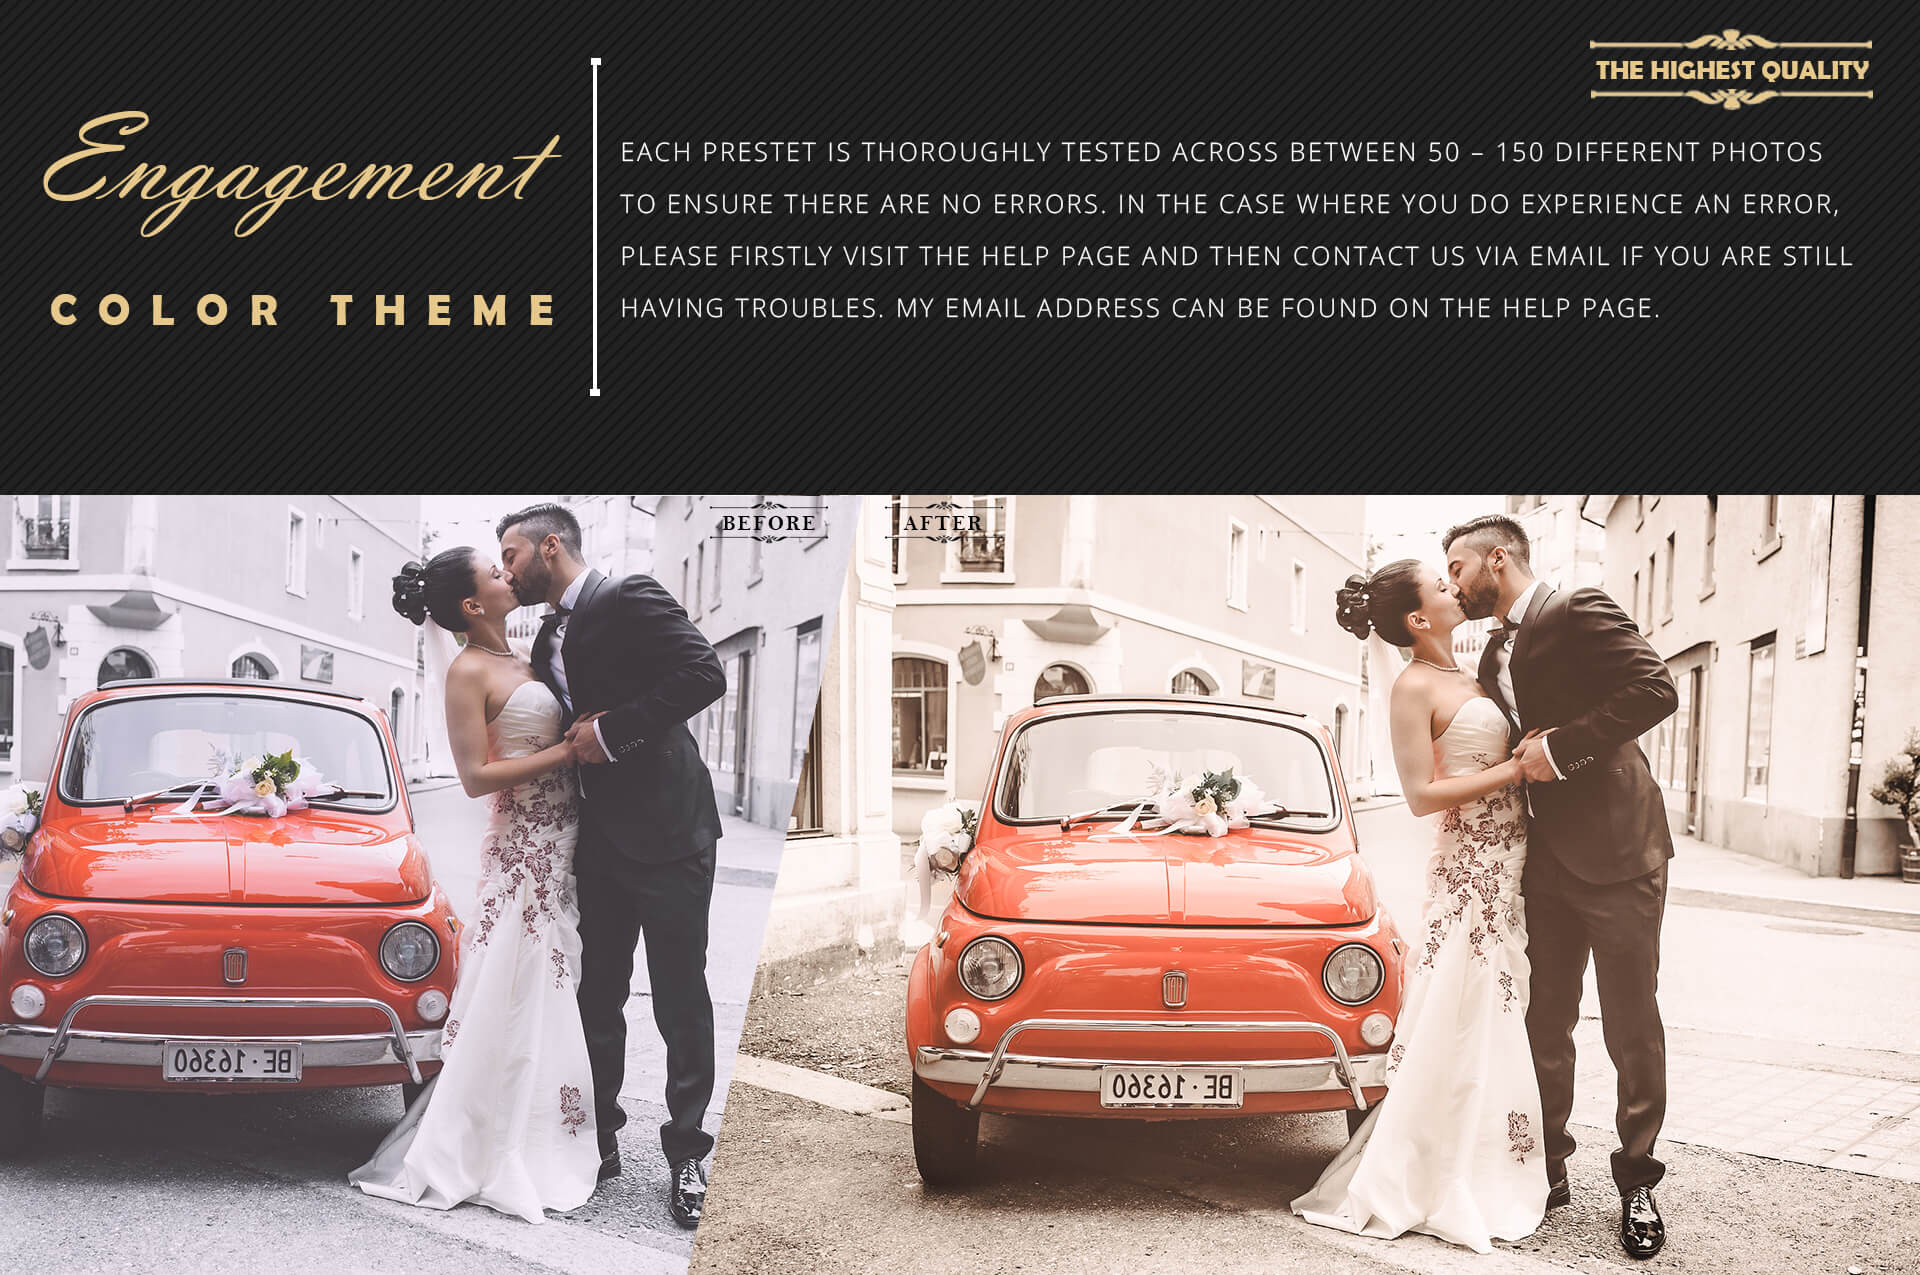 Engagement color grading lightroom presets theme example image 6